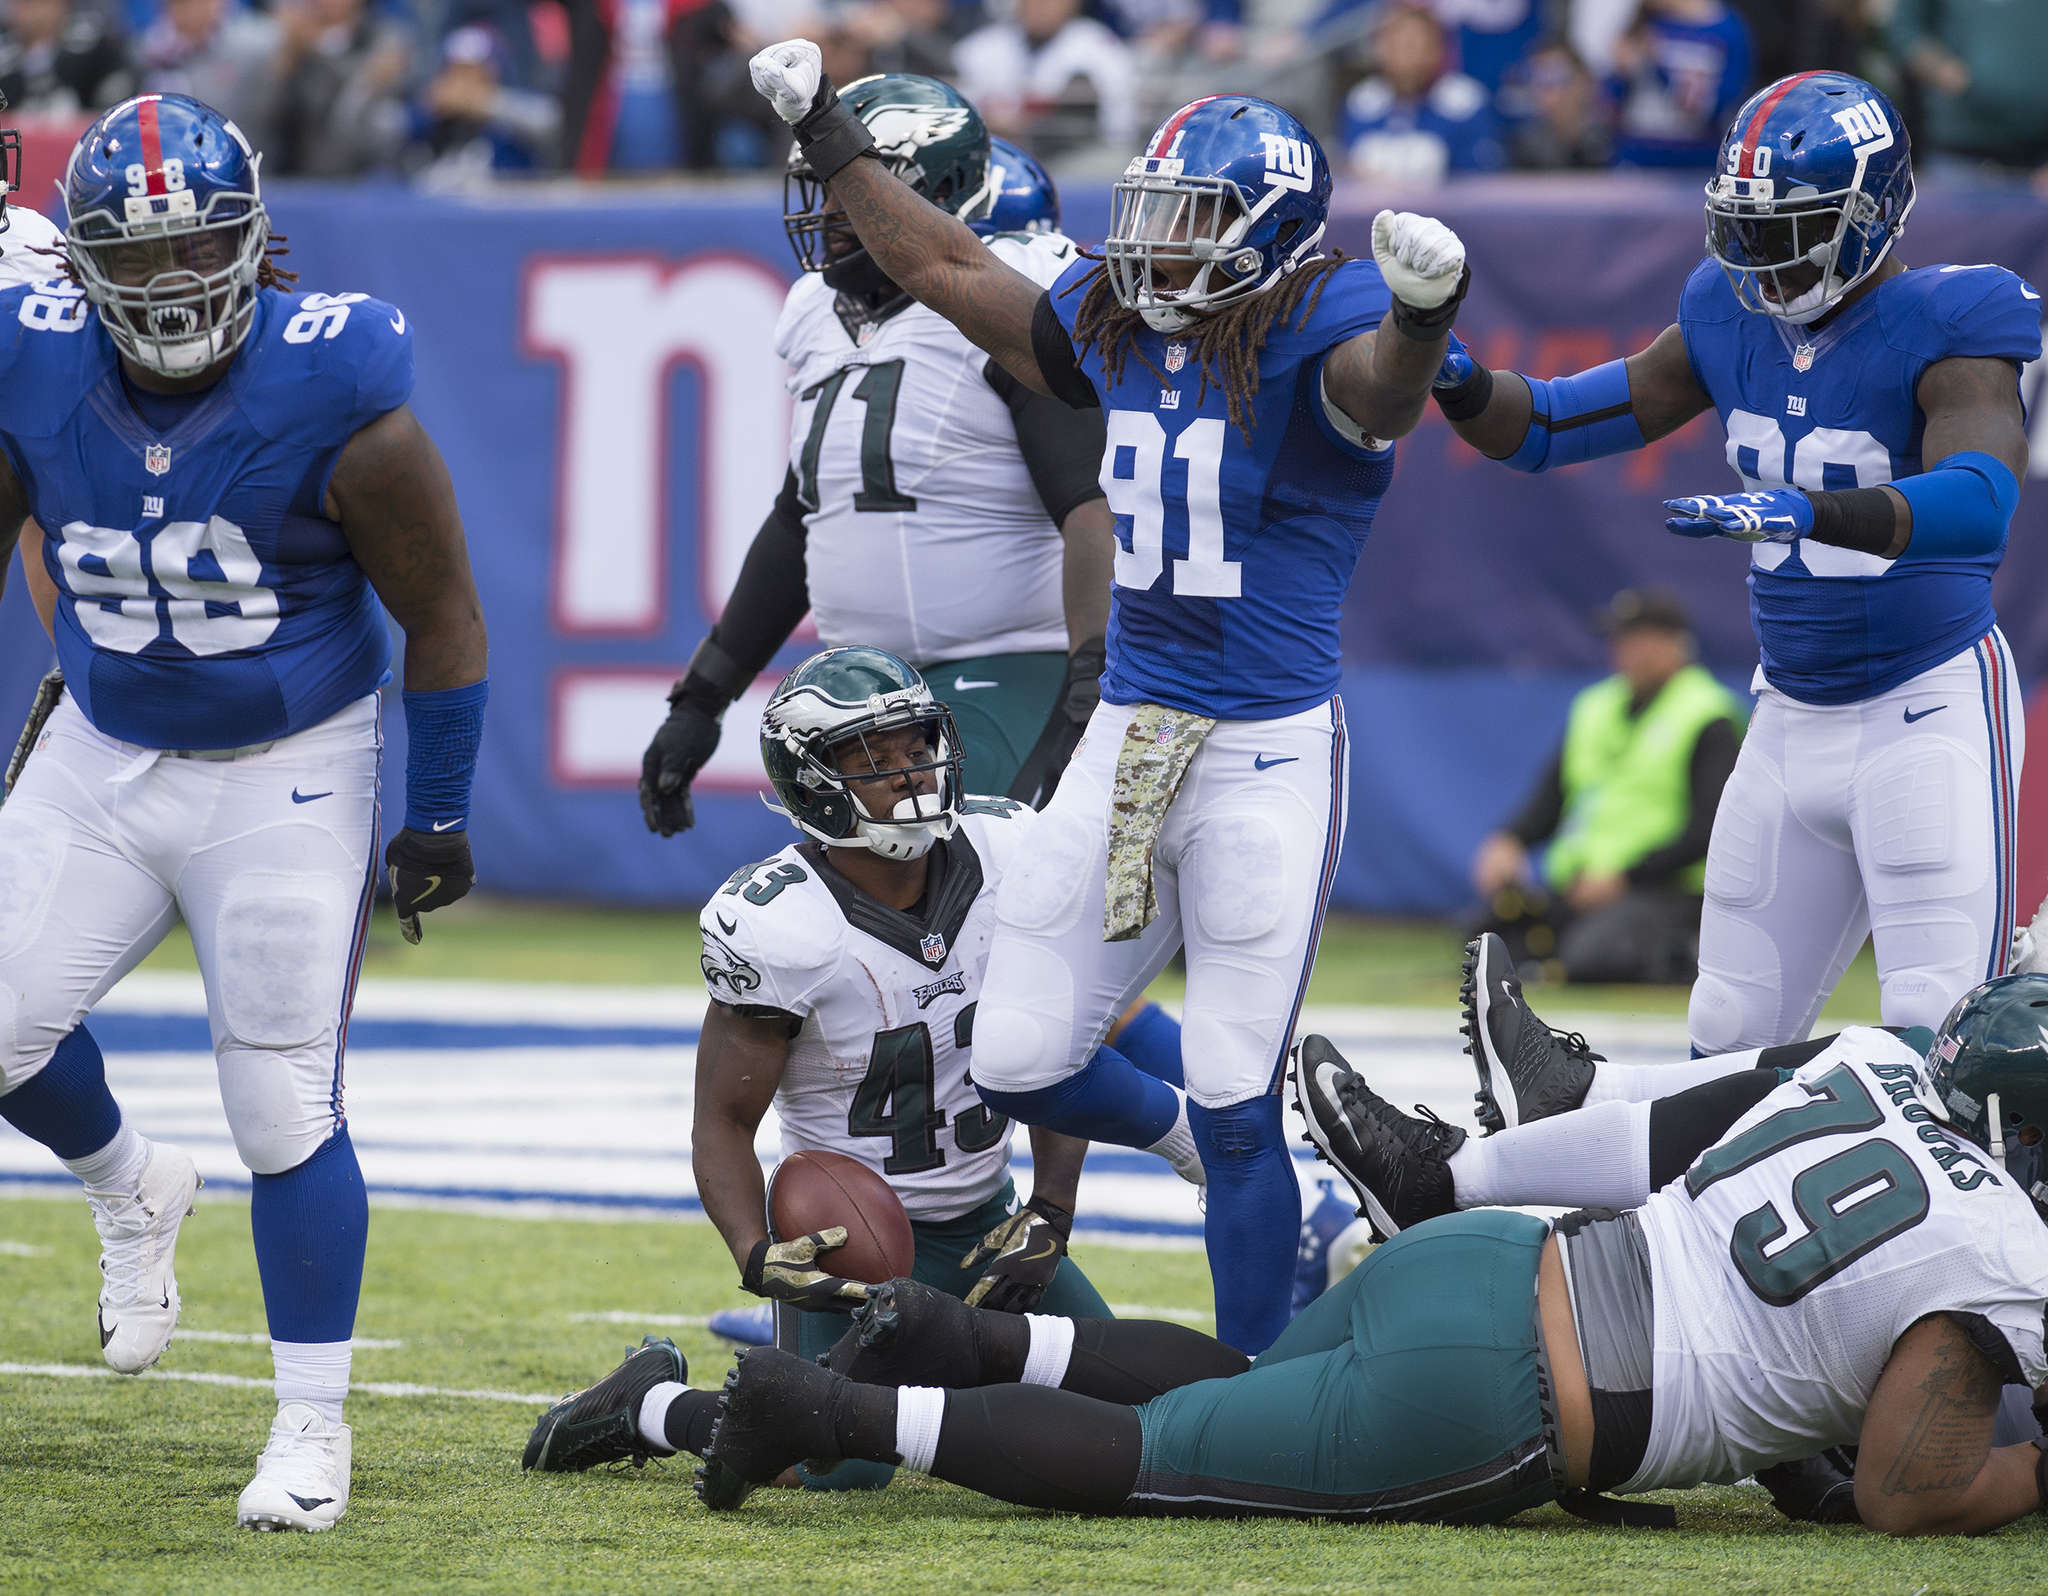 Eagles´ Darren Sproles looks dejectedly at jubilant Giants´ defenders after failing to get first down on fourth-and-1 in second quarter.